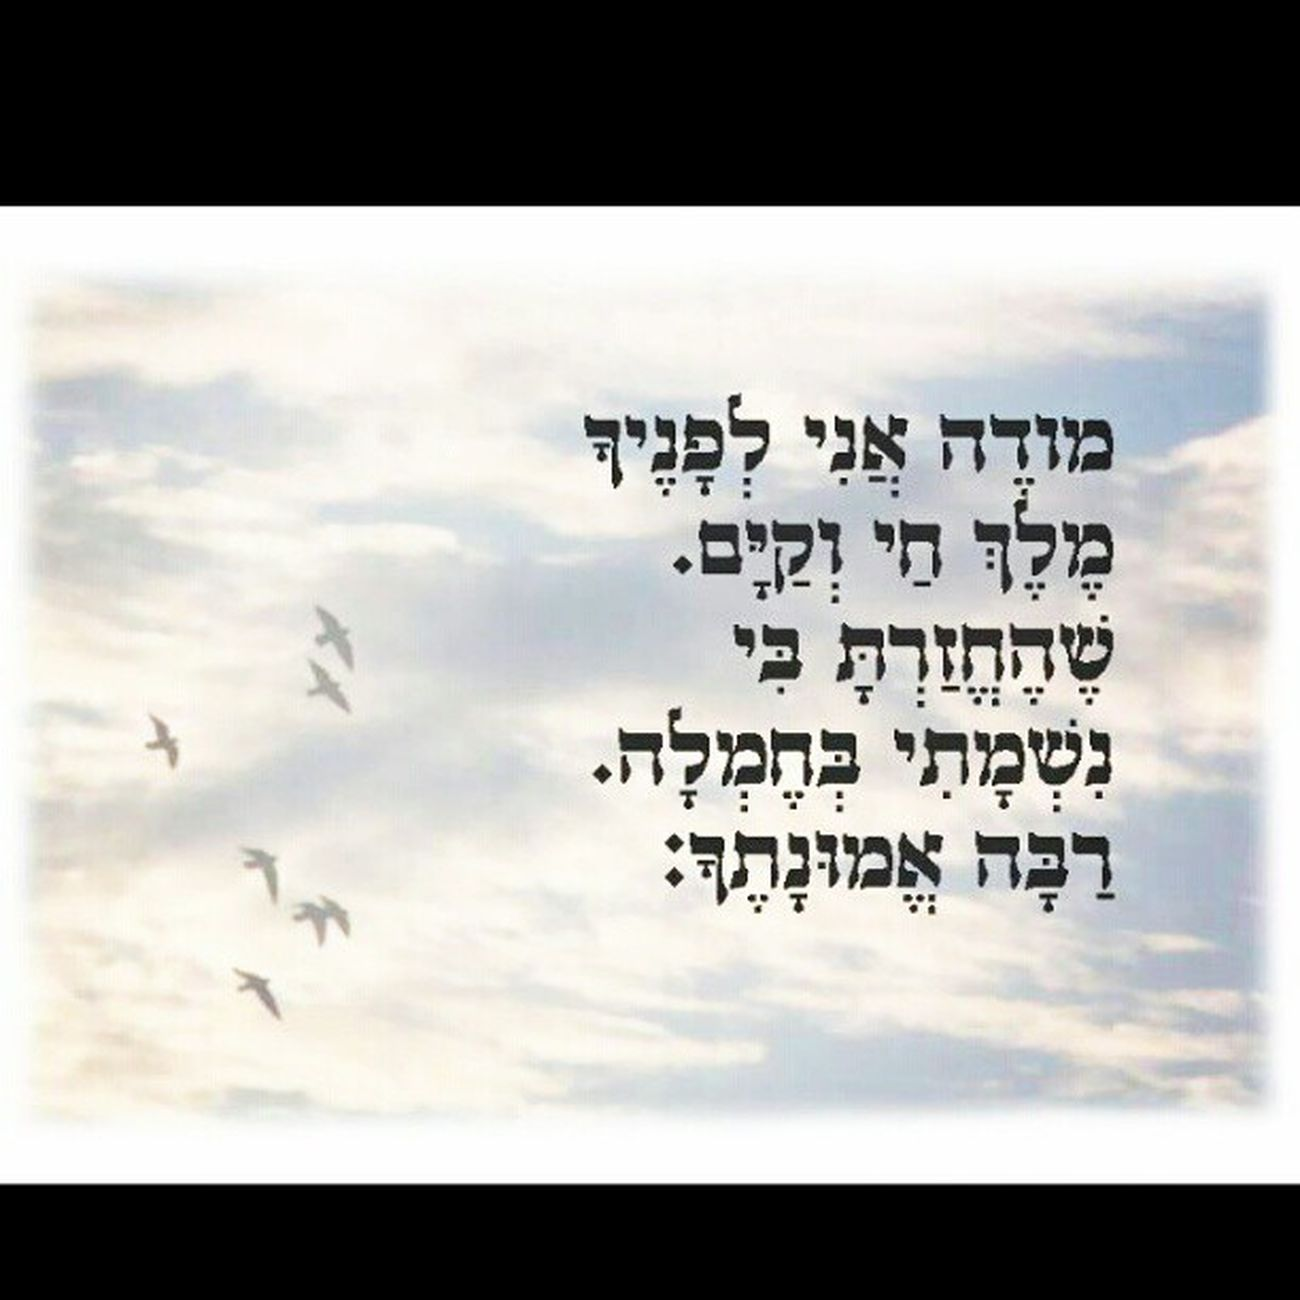 Israel Judaism Bible Tehilim GoodMorning